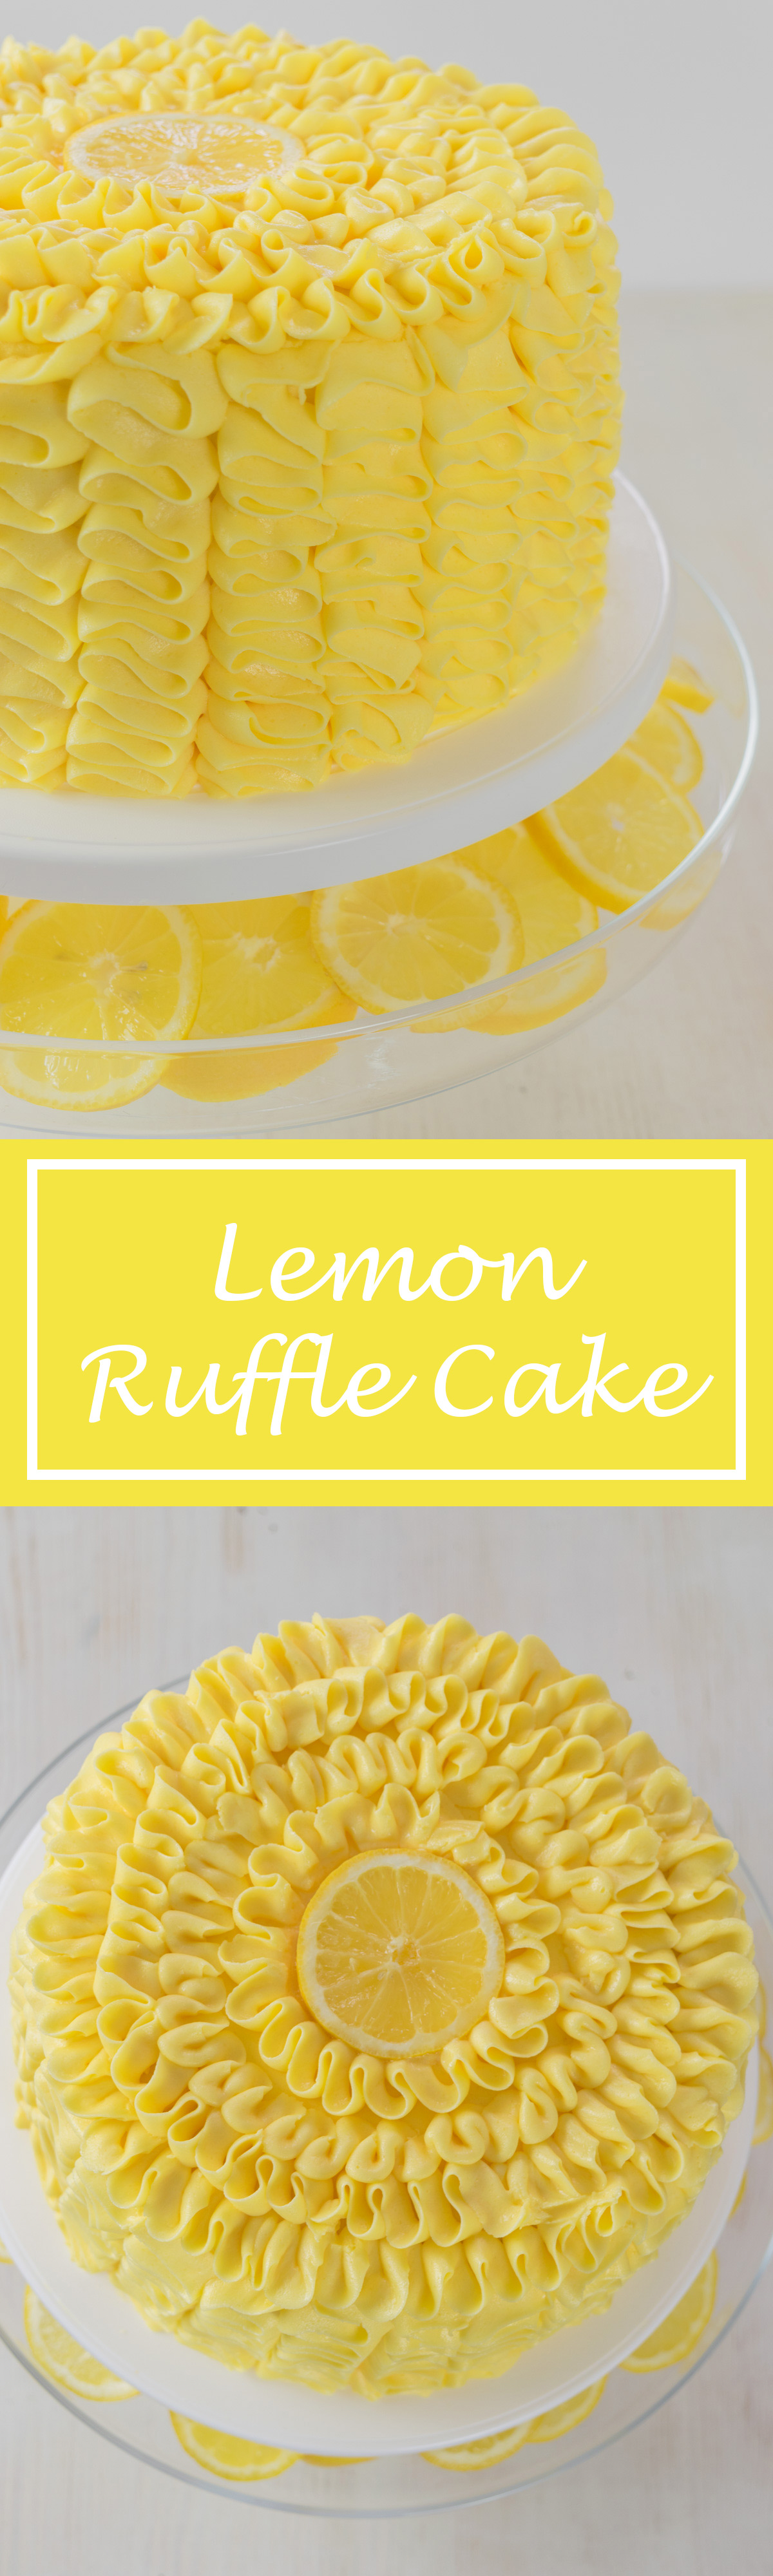 filled with lemon curd, yum!